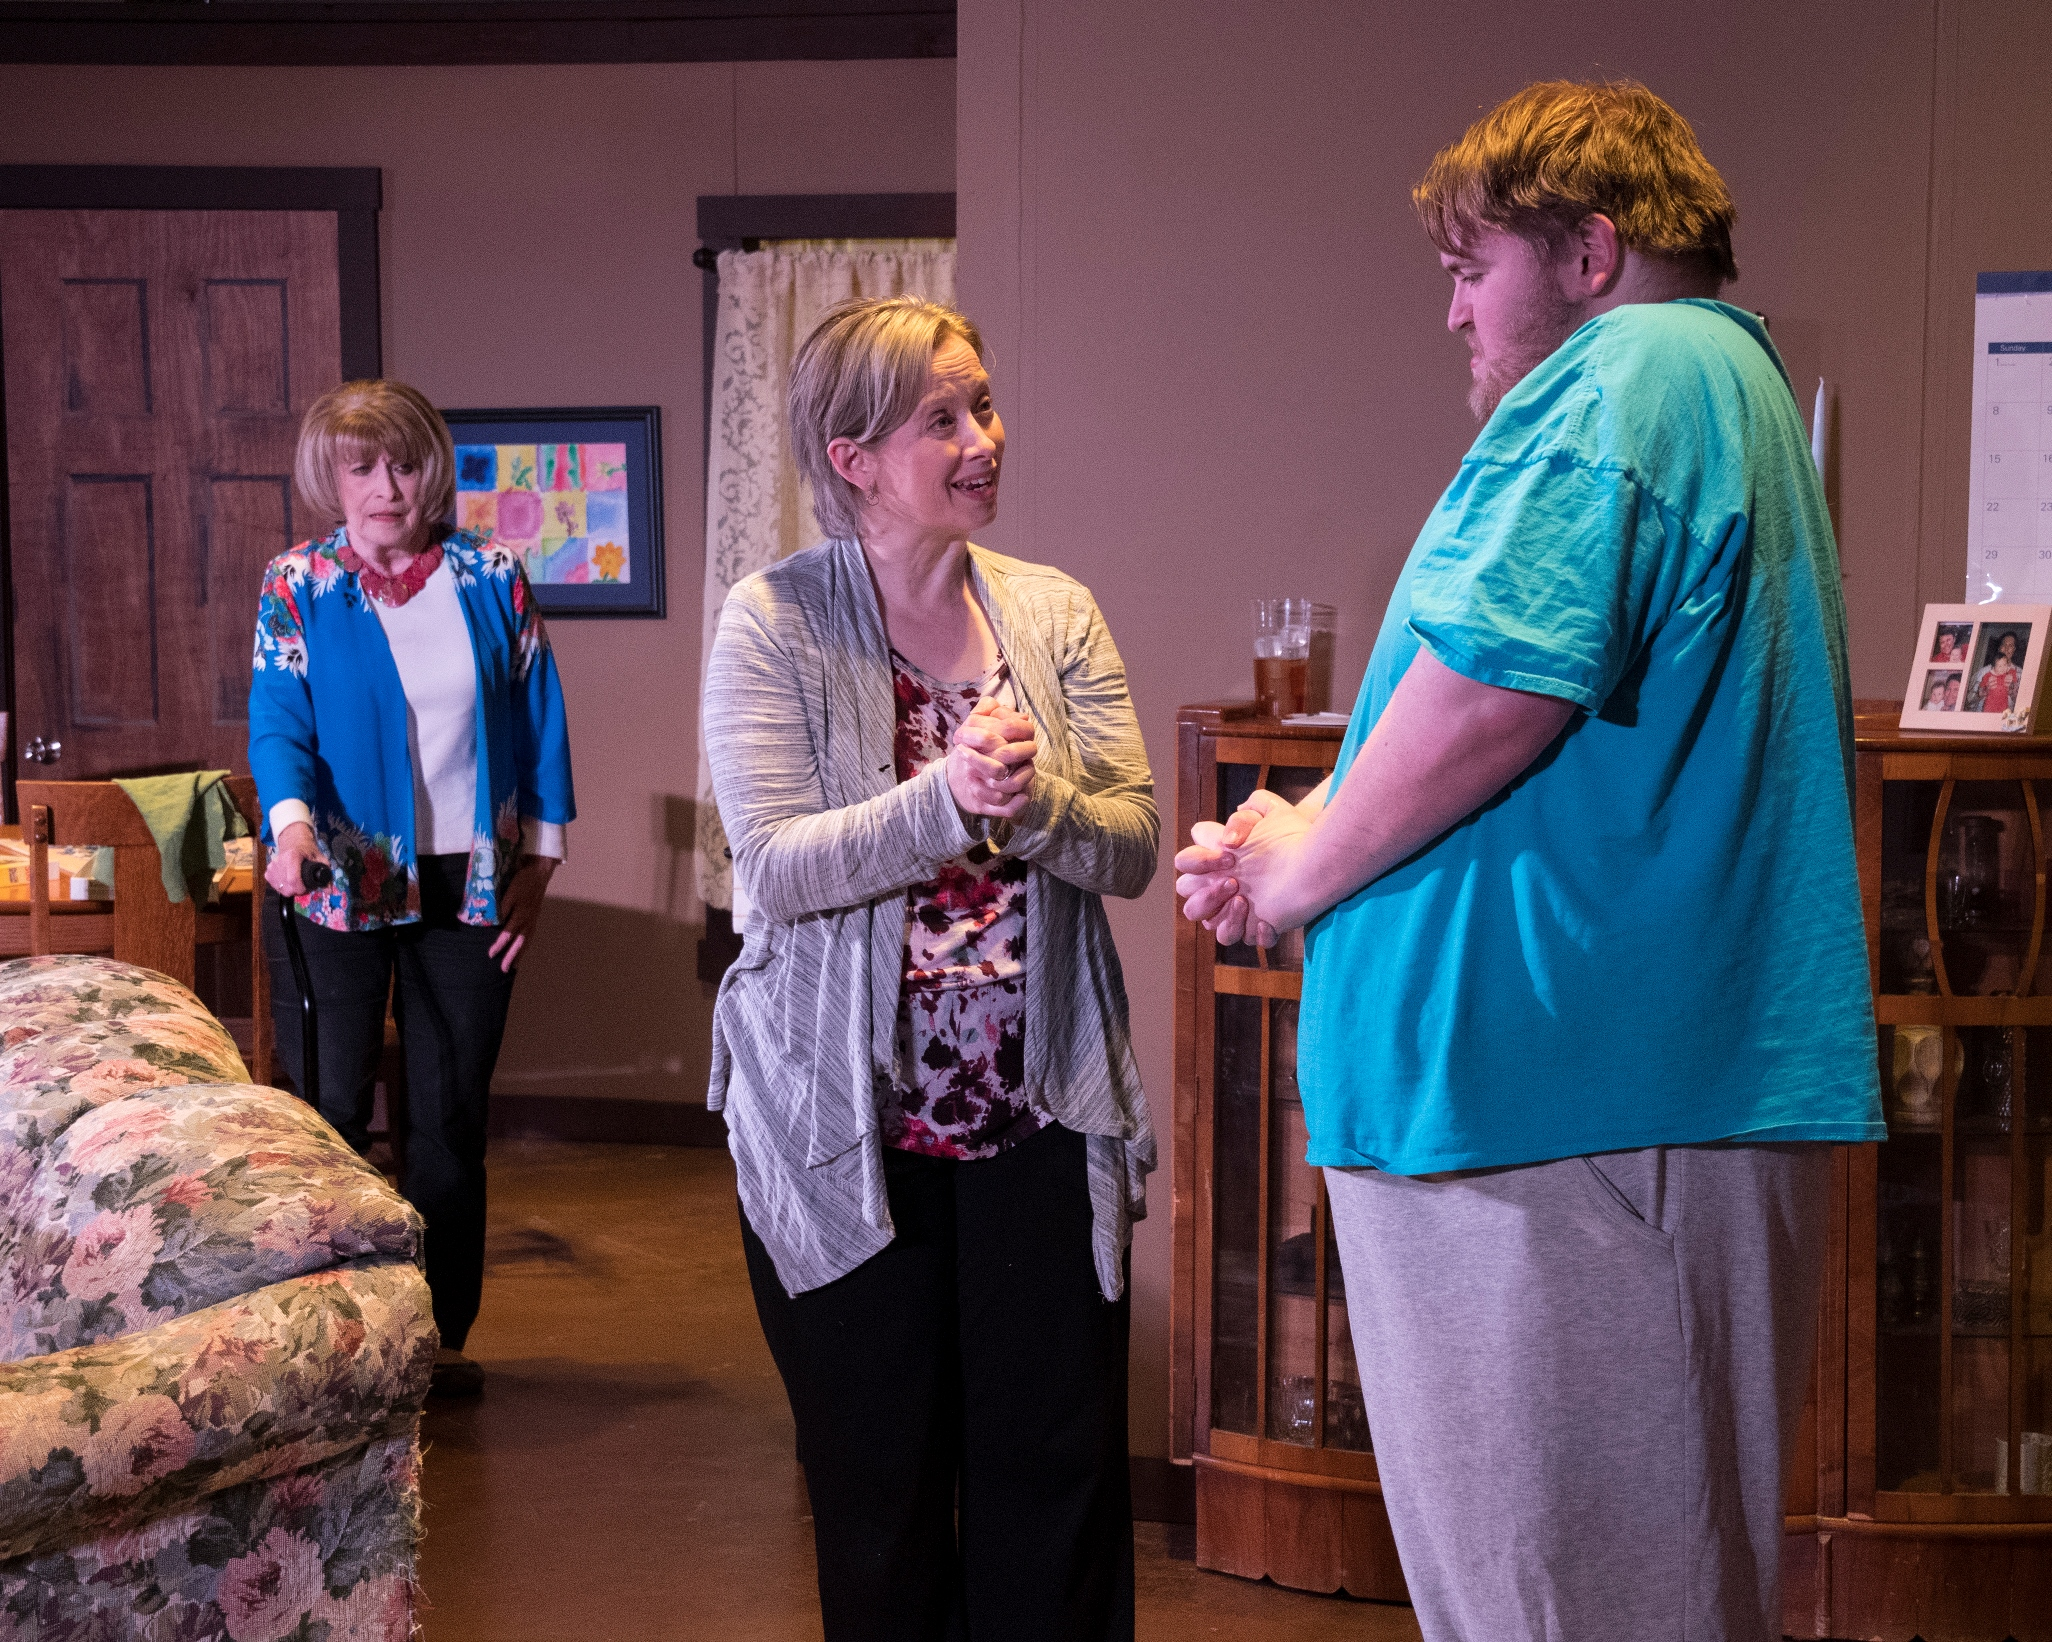 Tami, Josh's mother, helps Josh calm down in front of Grammy Sue, portrayed by Tommy Nolan. Photographed by Kim Howland.